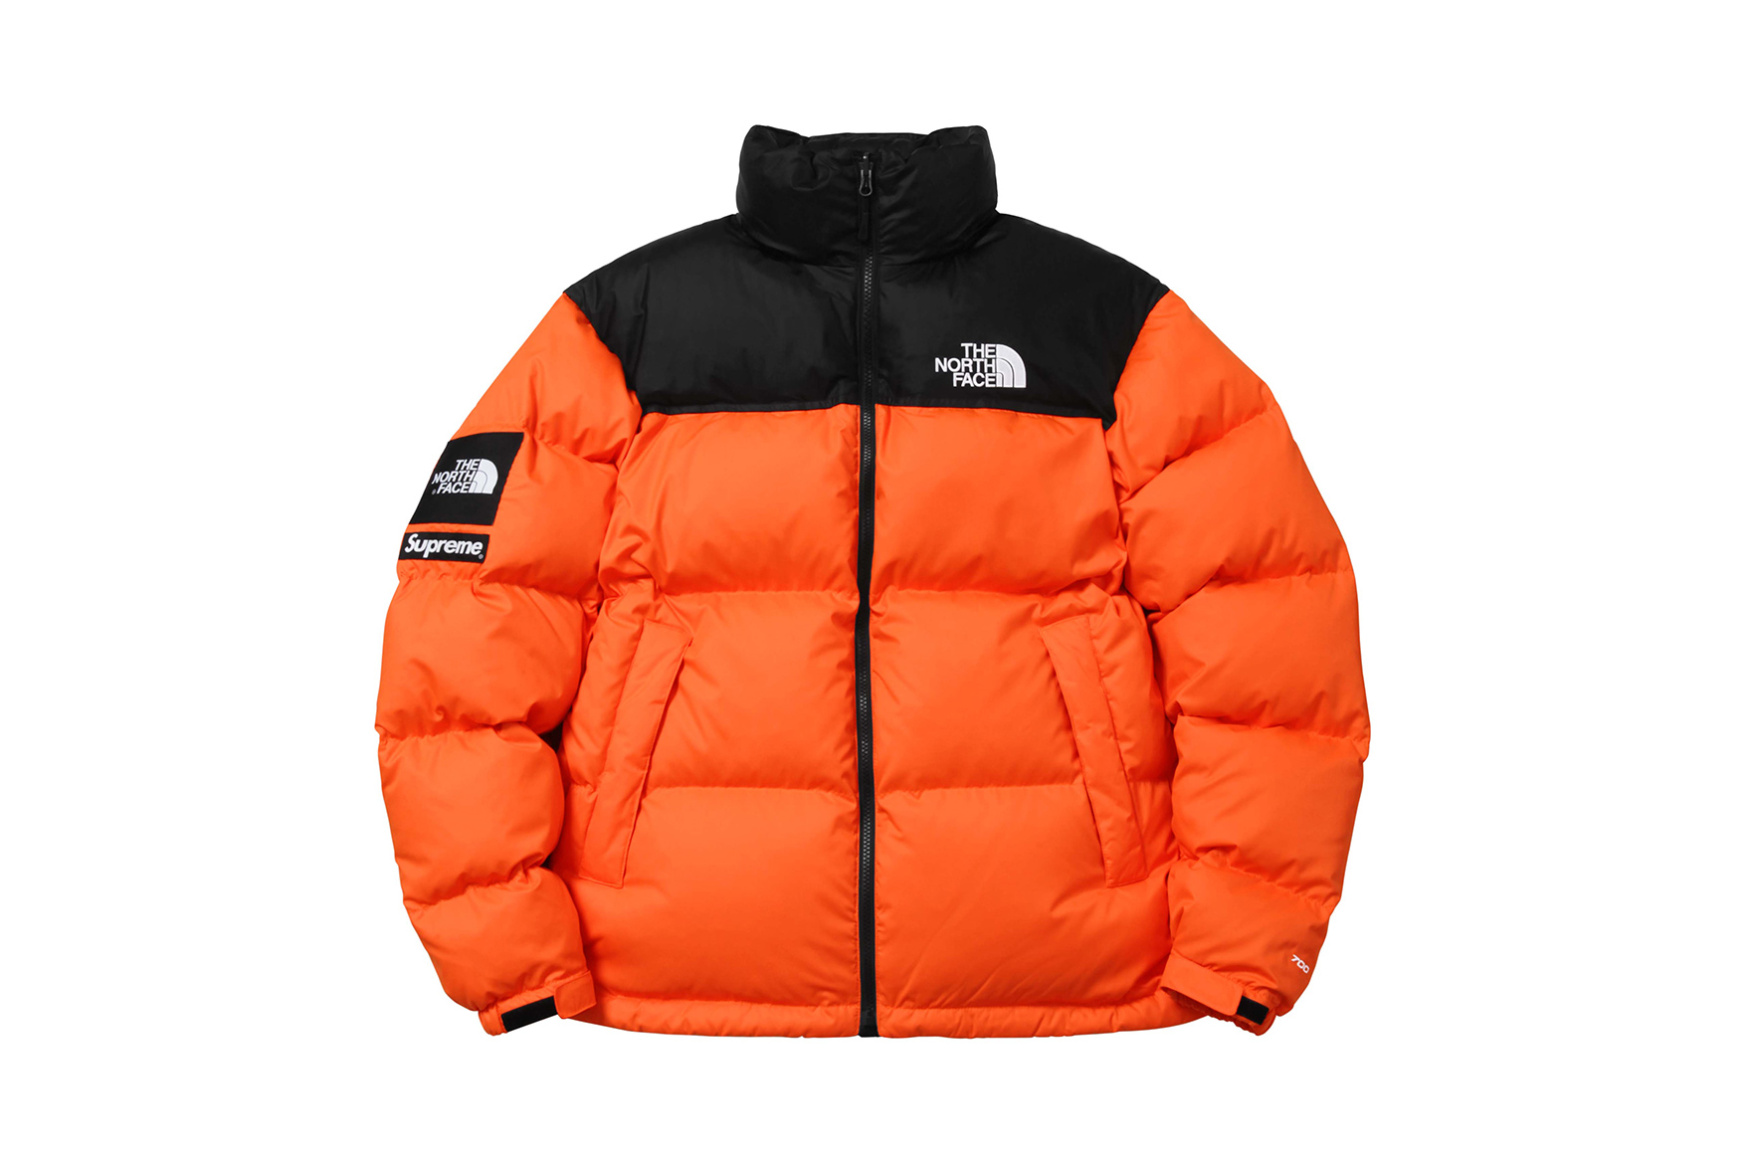 supreme-x-the-north-face-2016-fall-winter-collection-11